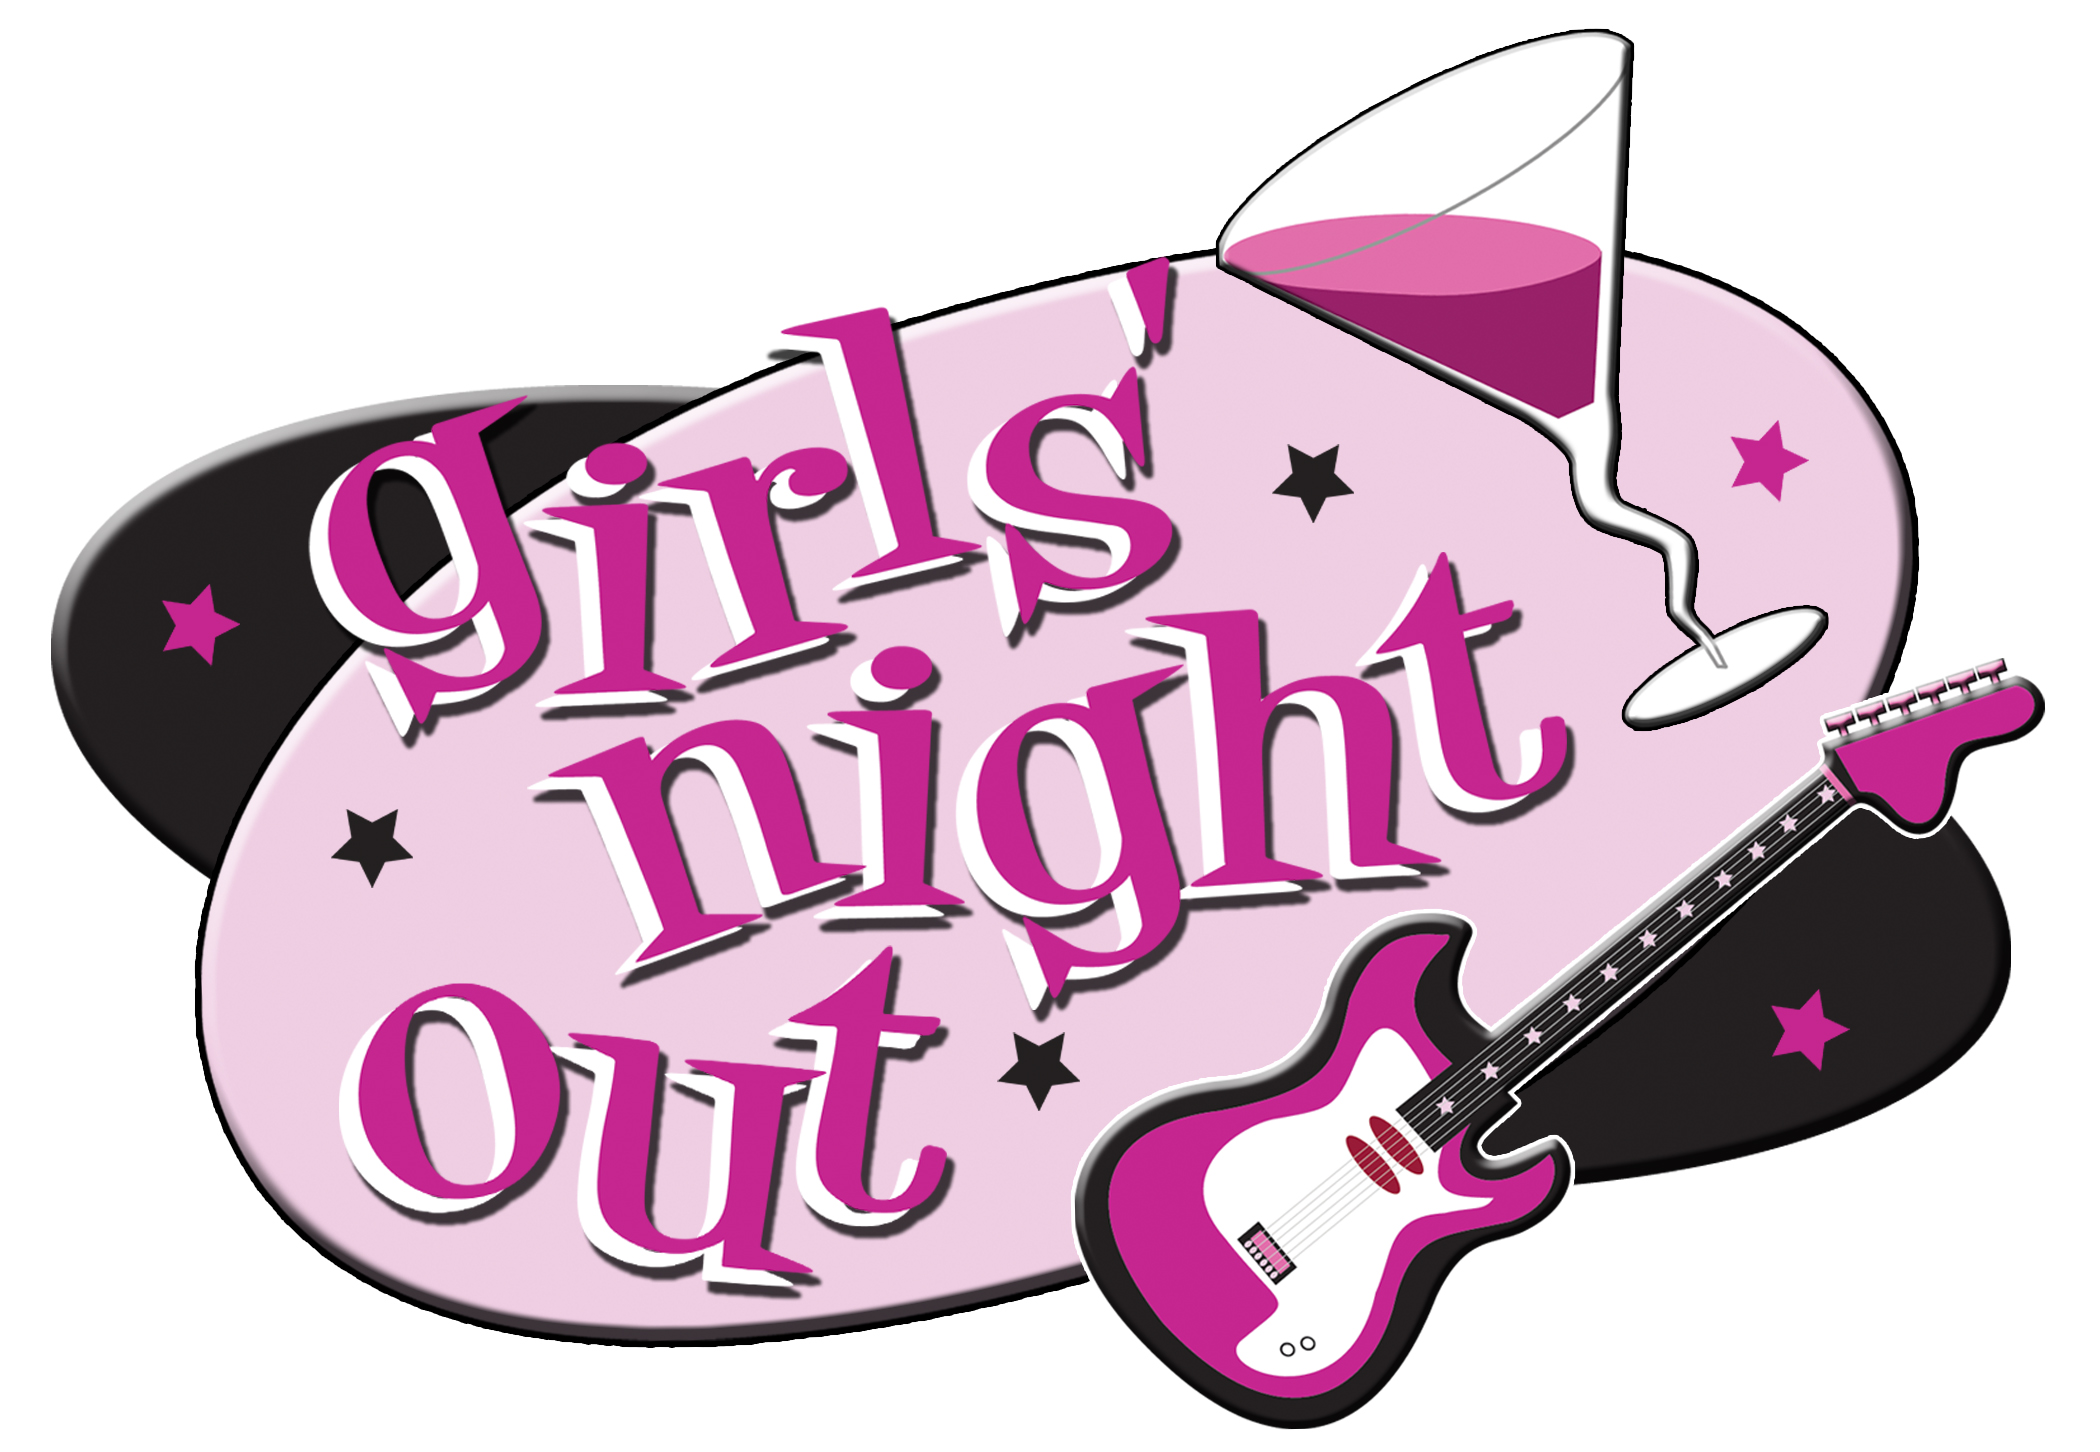 night out clip art - photo #27